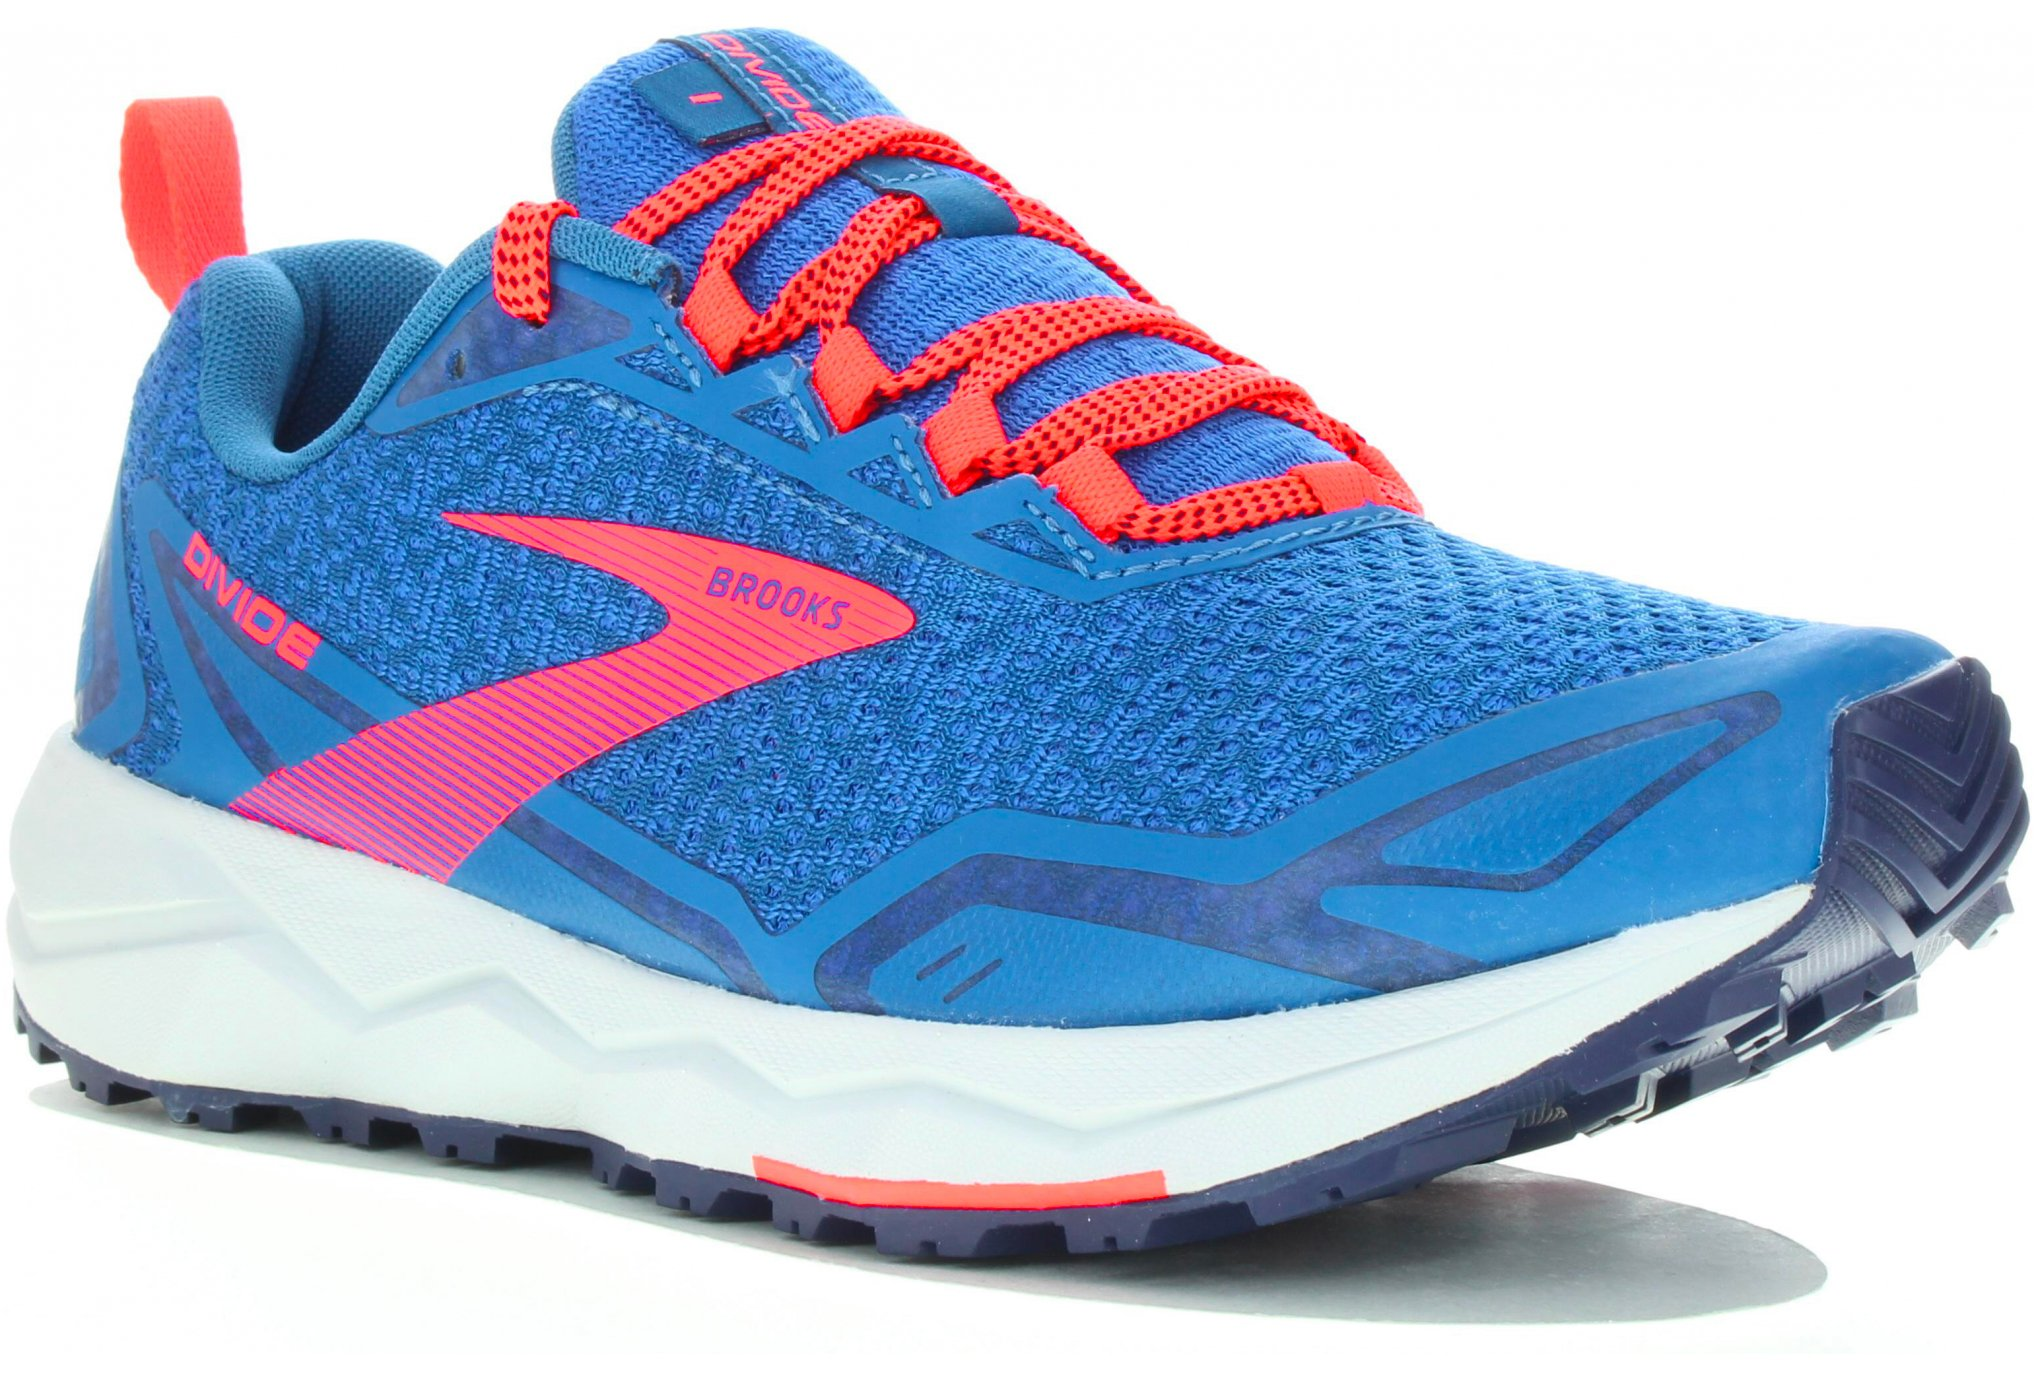 Brooks Divide Chaussures running femme